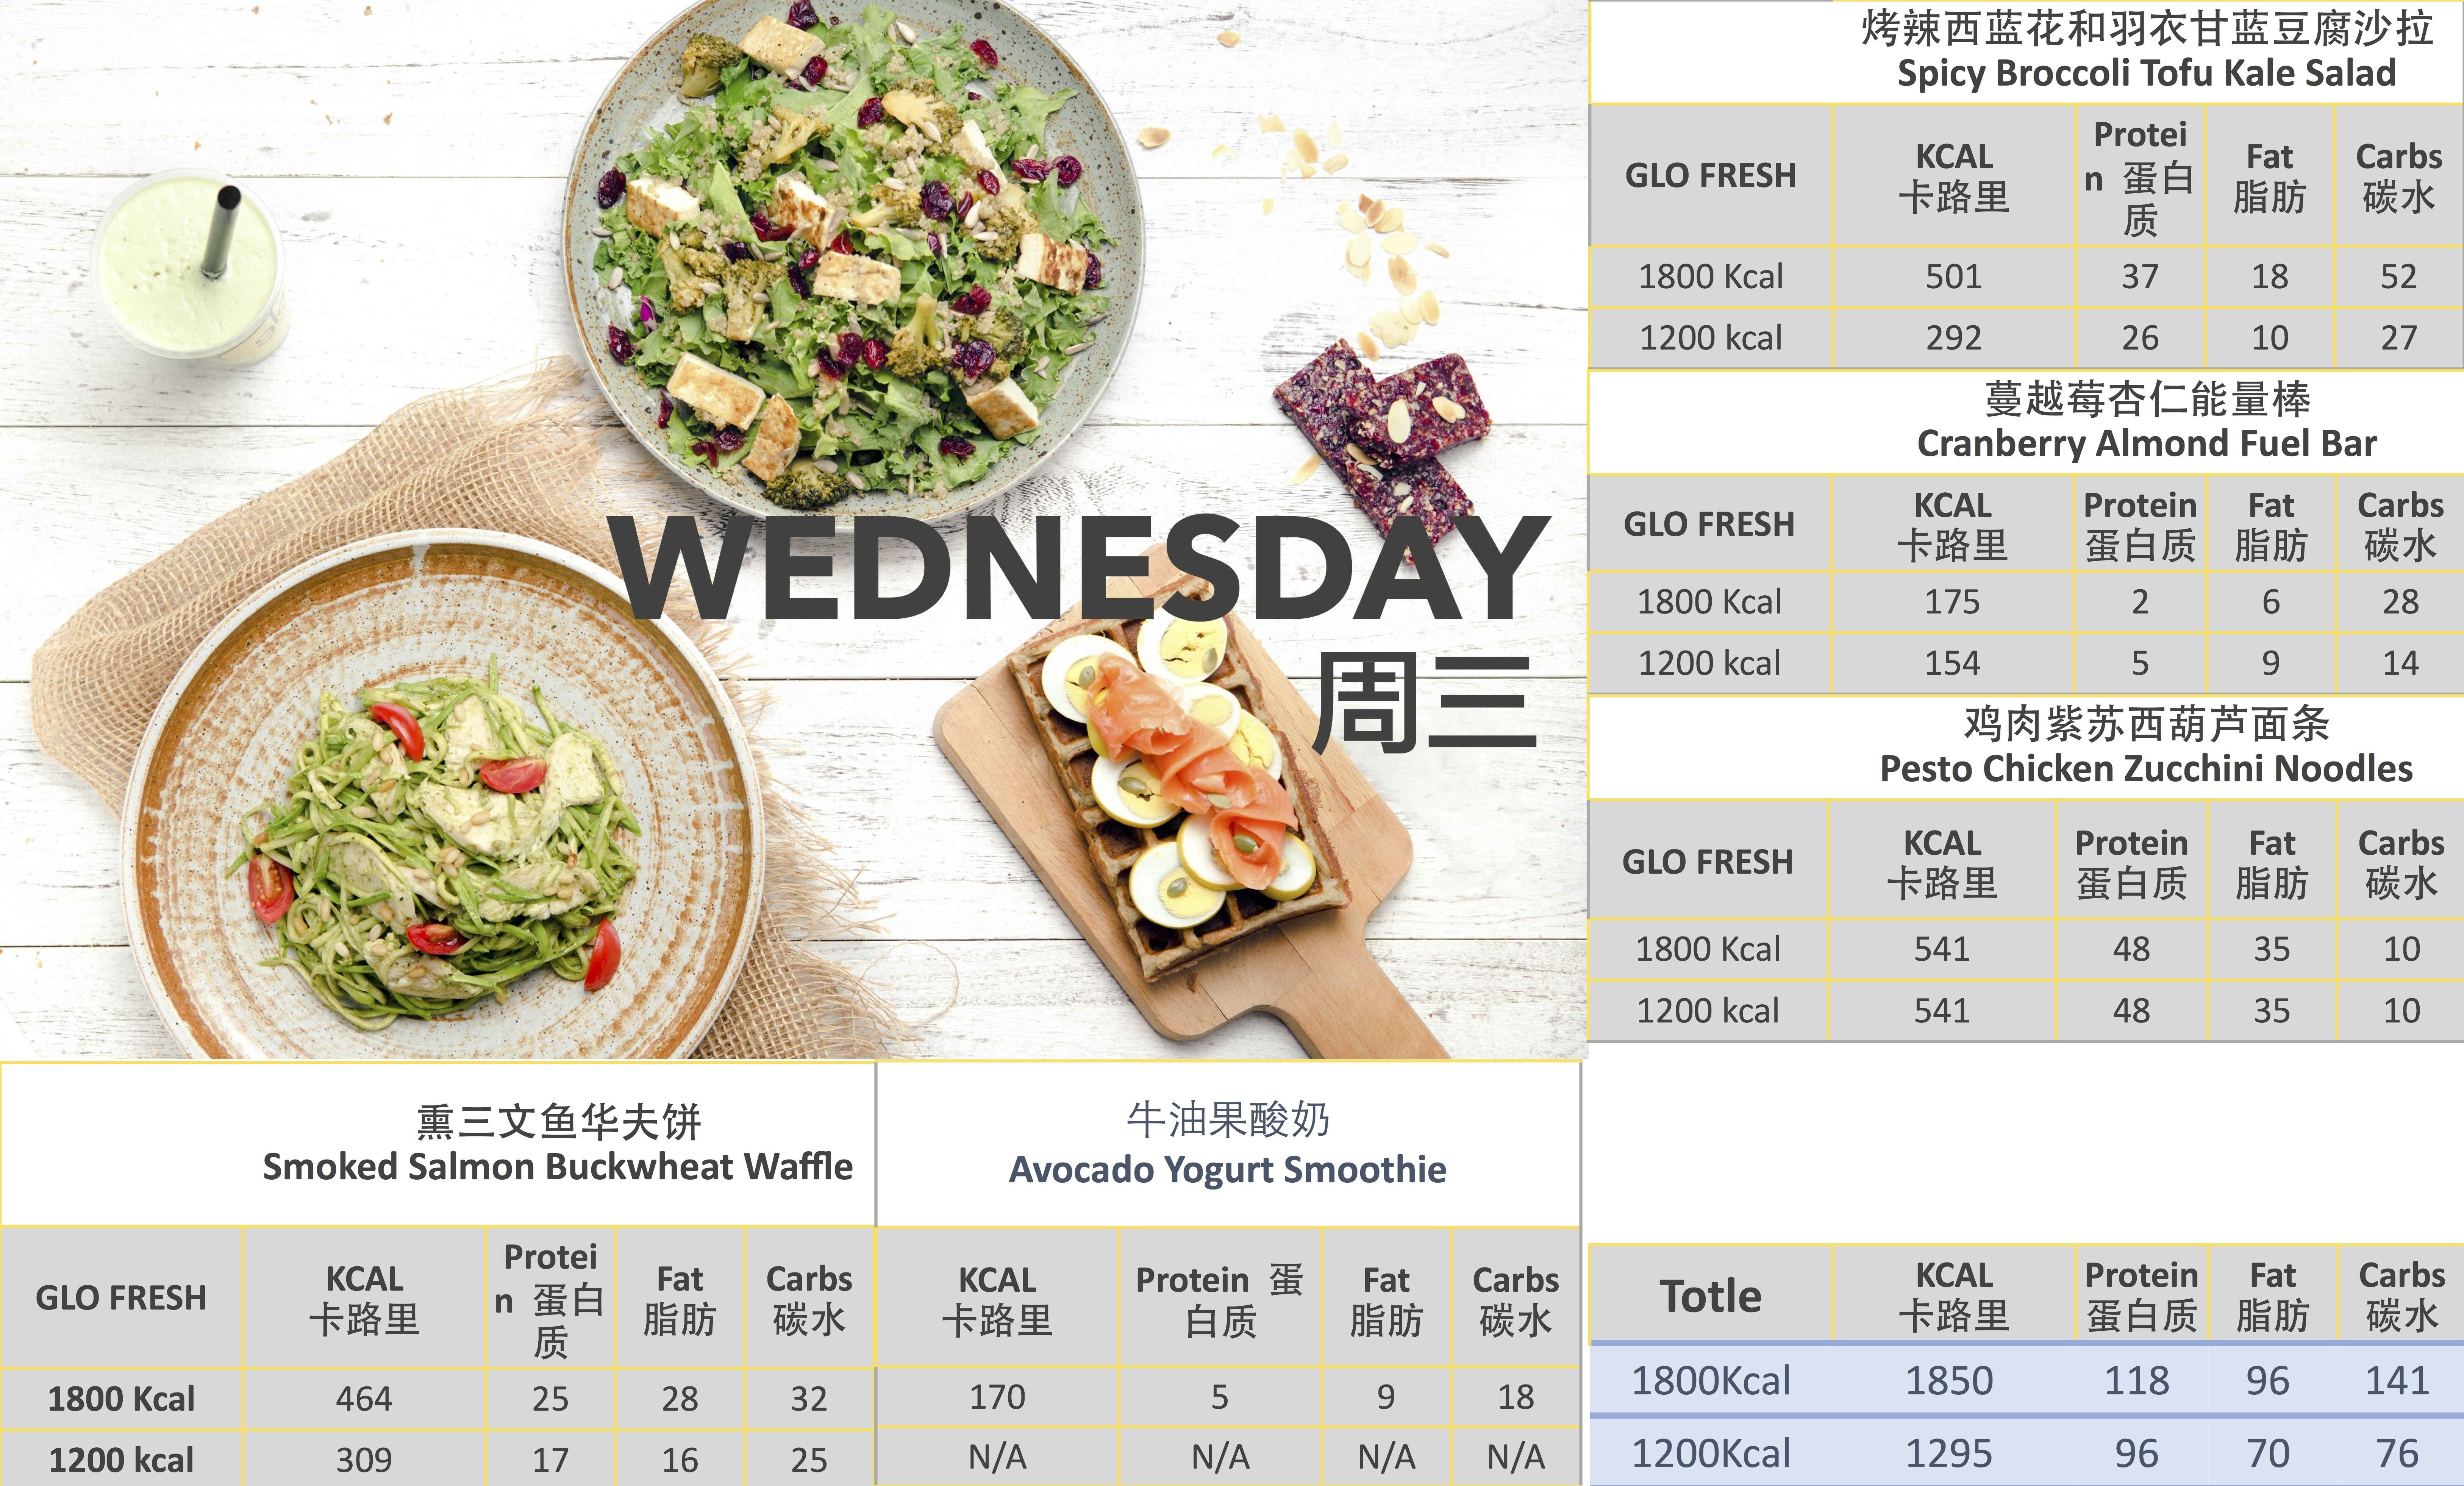 GLO周餐,纤体, GLO FRESH meal plan